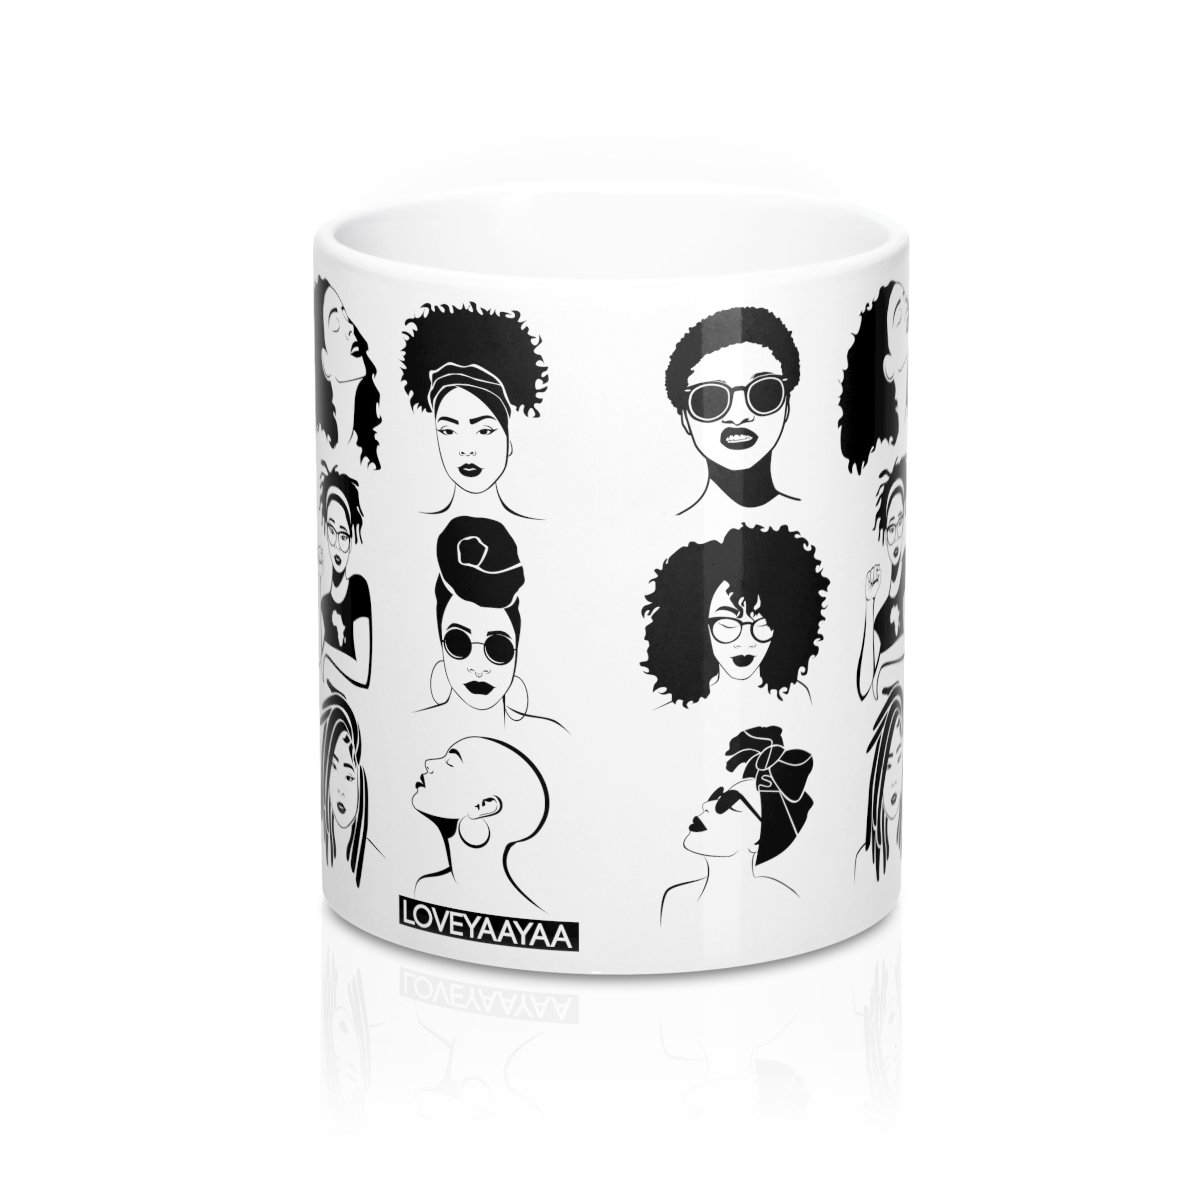 Sistas Mug 11oz - Stand out in the office! - loveyaayaa